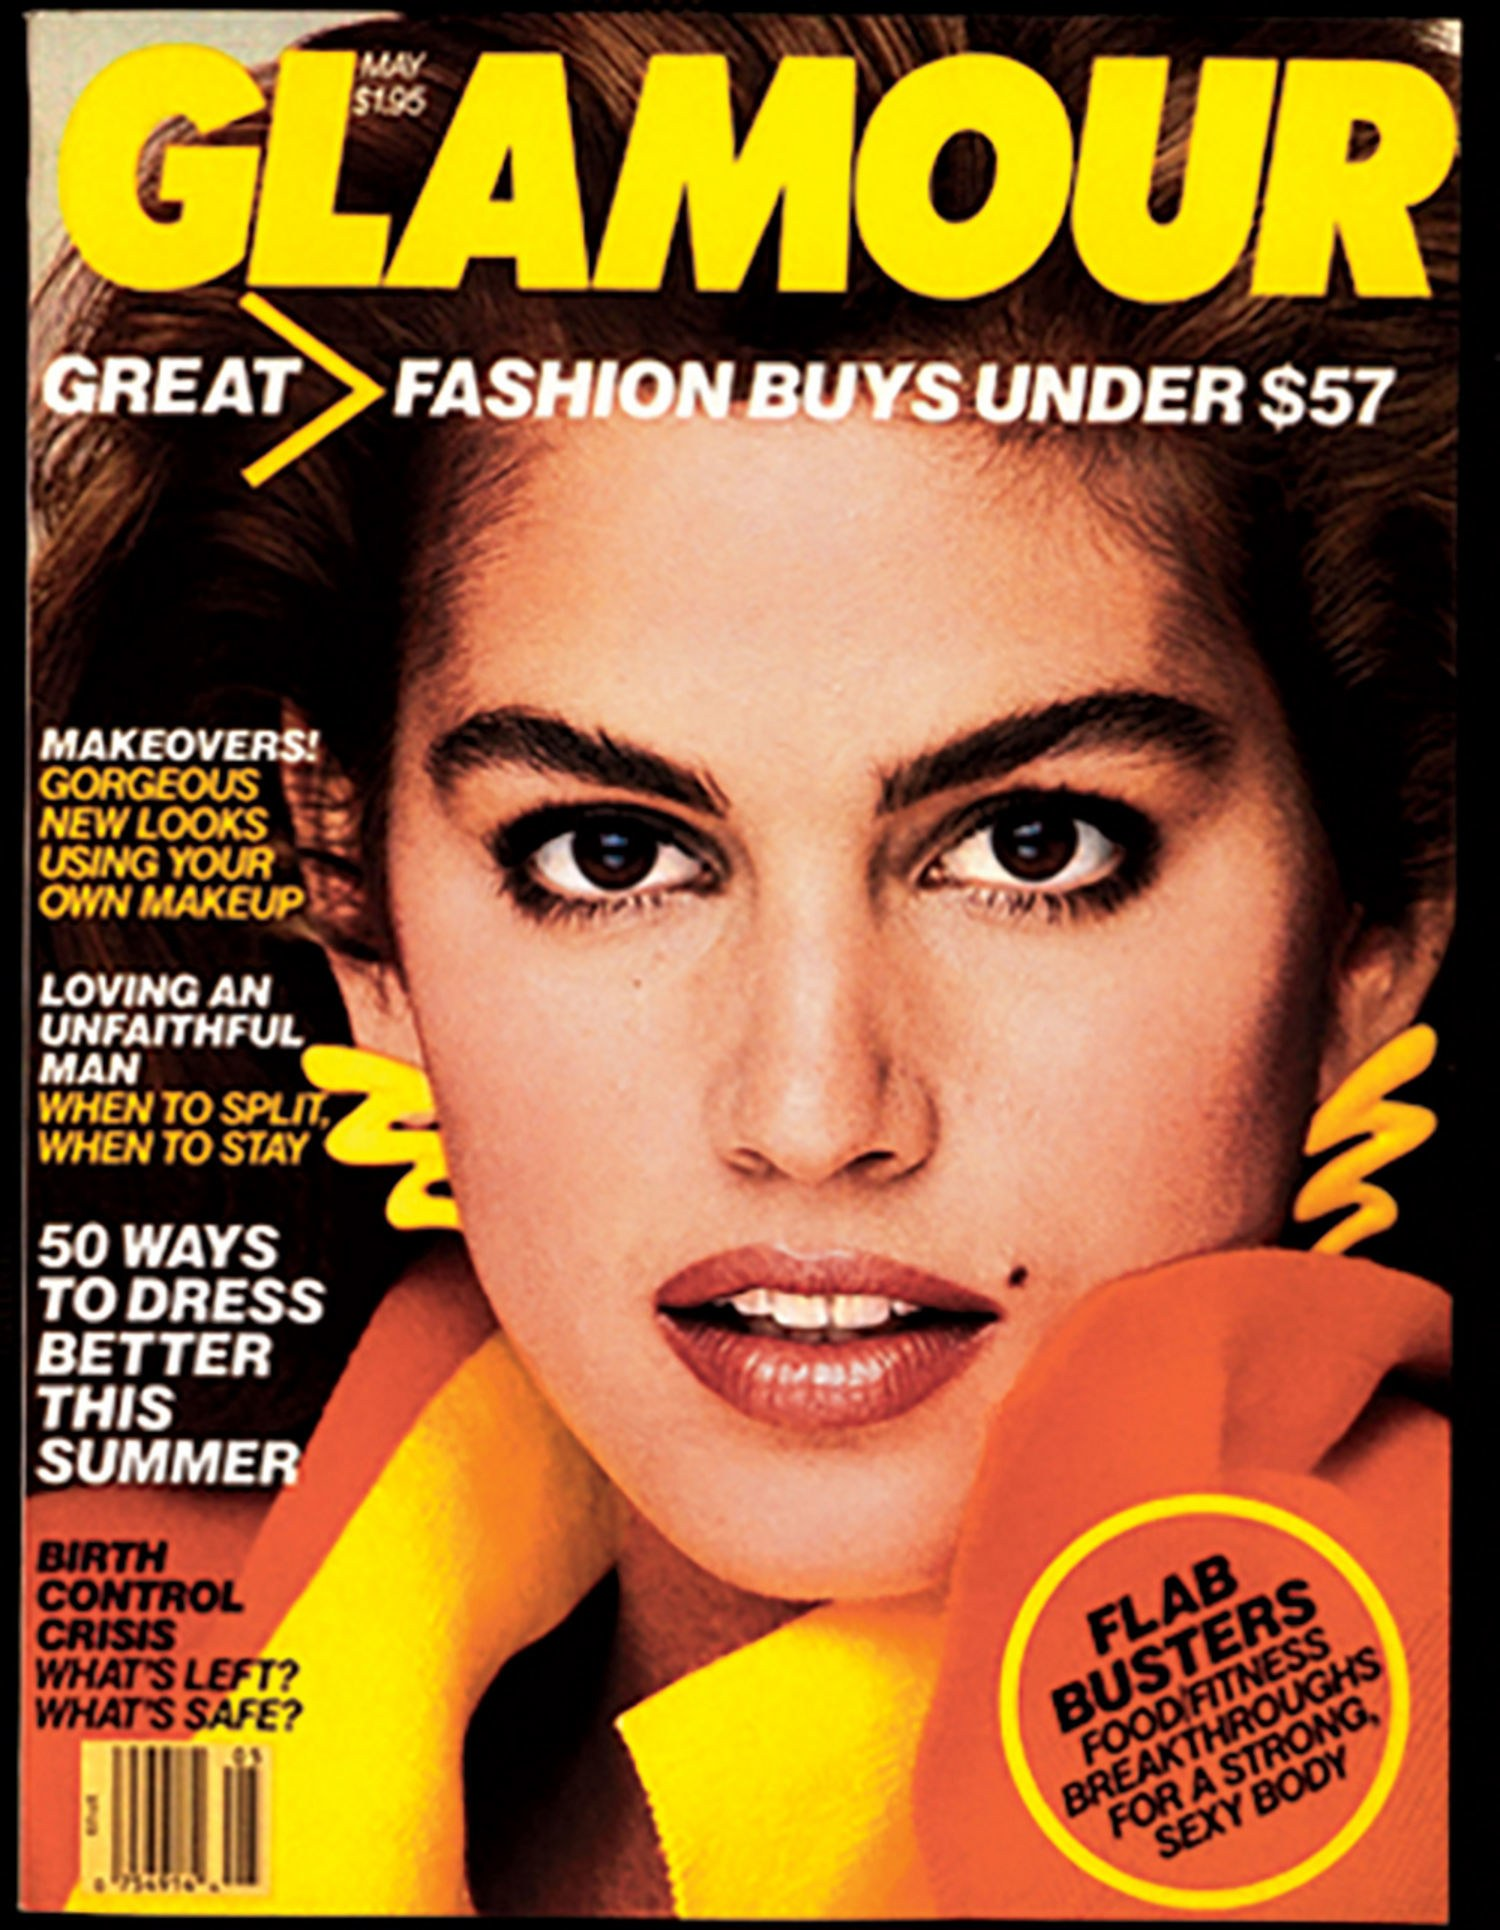 Where is cindy crawford from